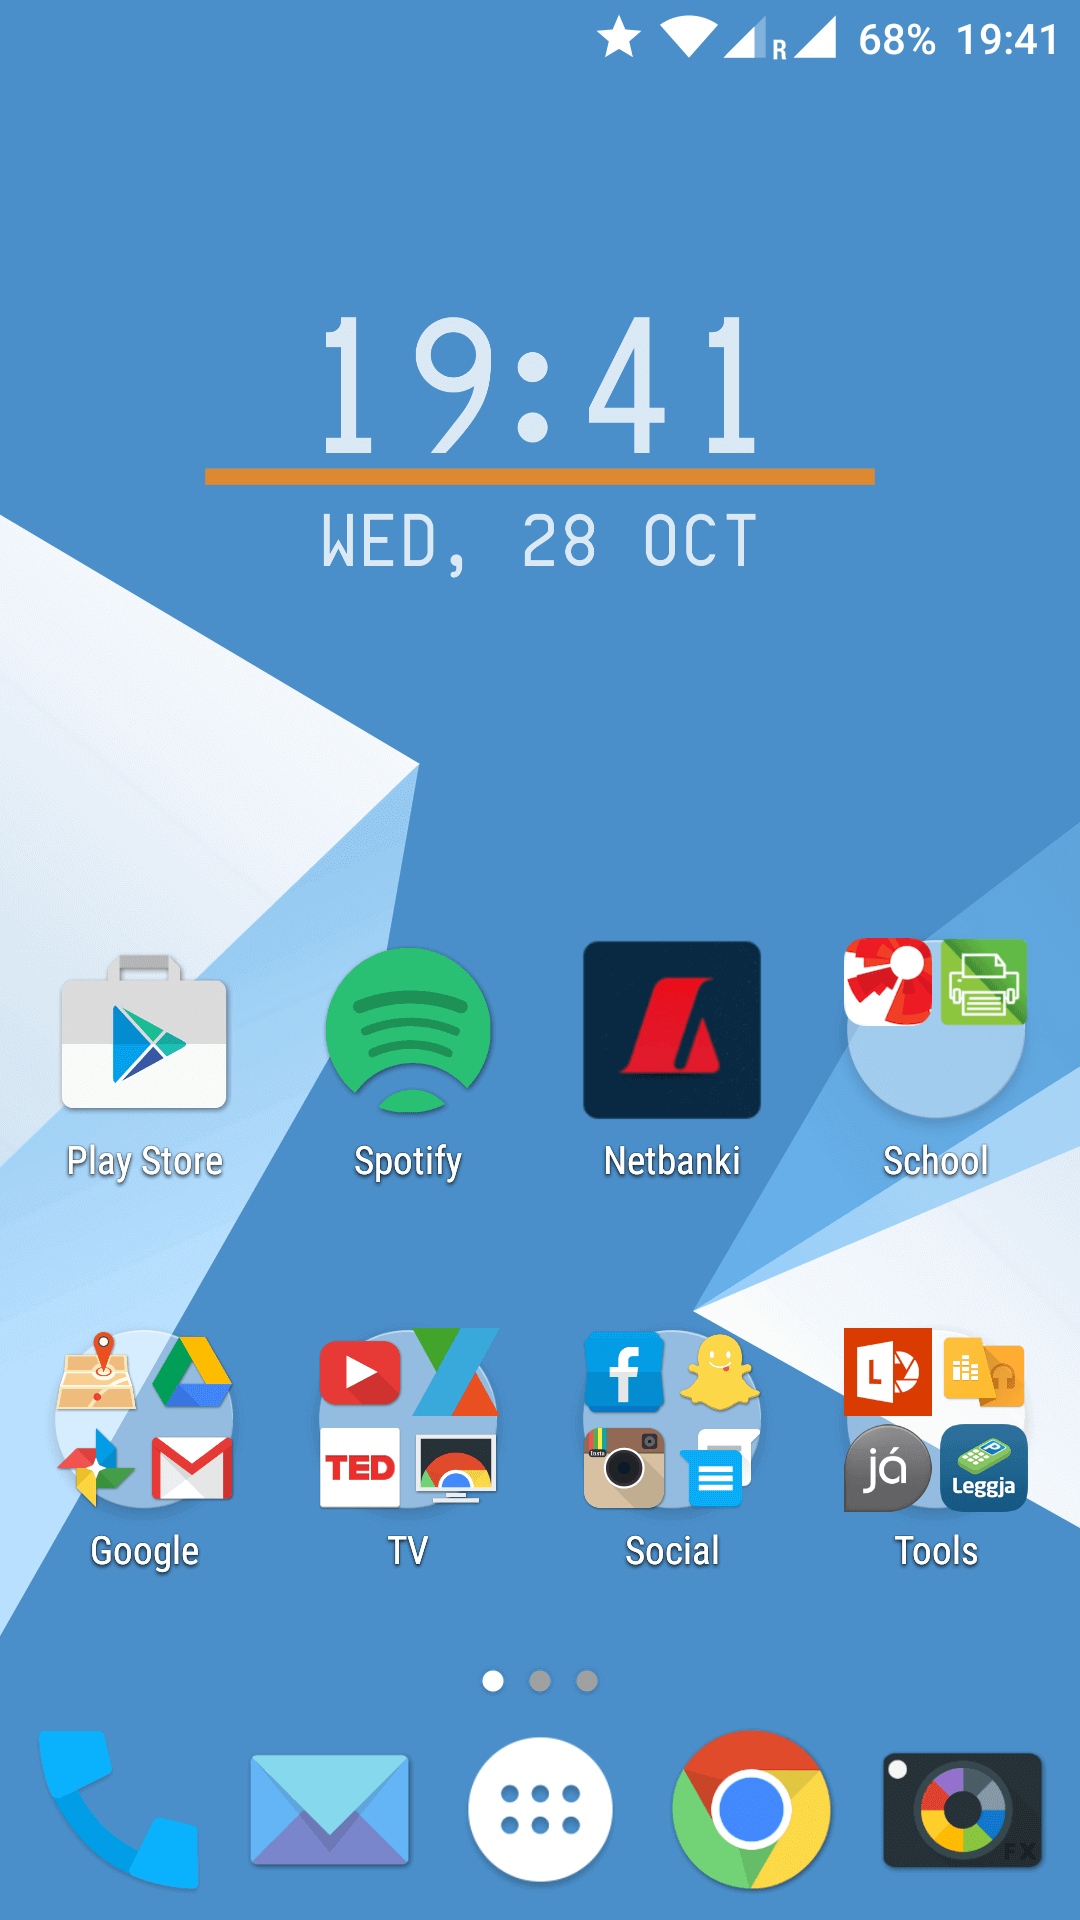 Google Now Launcher 1.4.large apk free and safe download. Get Google Now Launcher latest version for Samsung, Huawei, Xiaomi, LG, HTC, Lenovo and all other Android phones, tablets and devices.